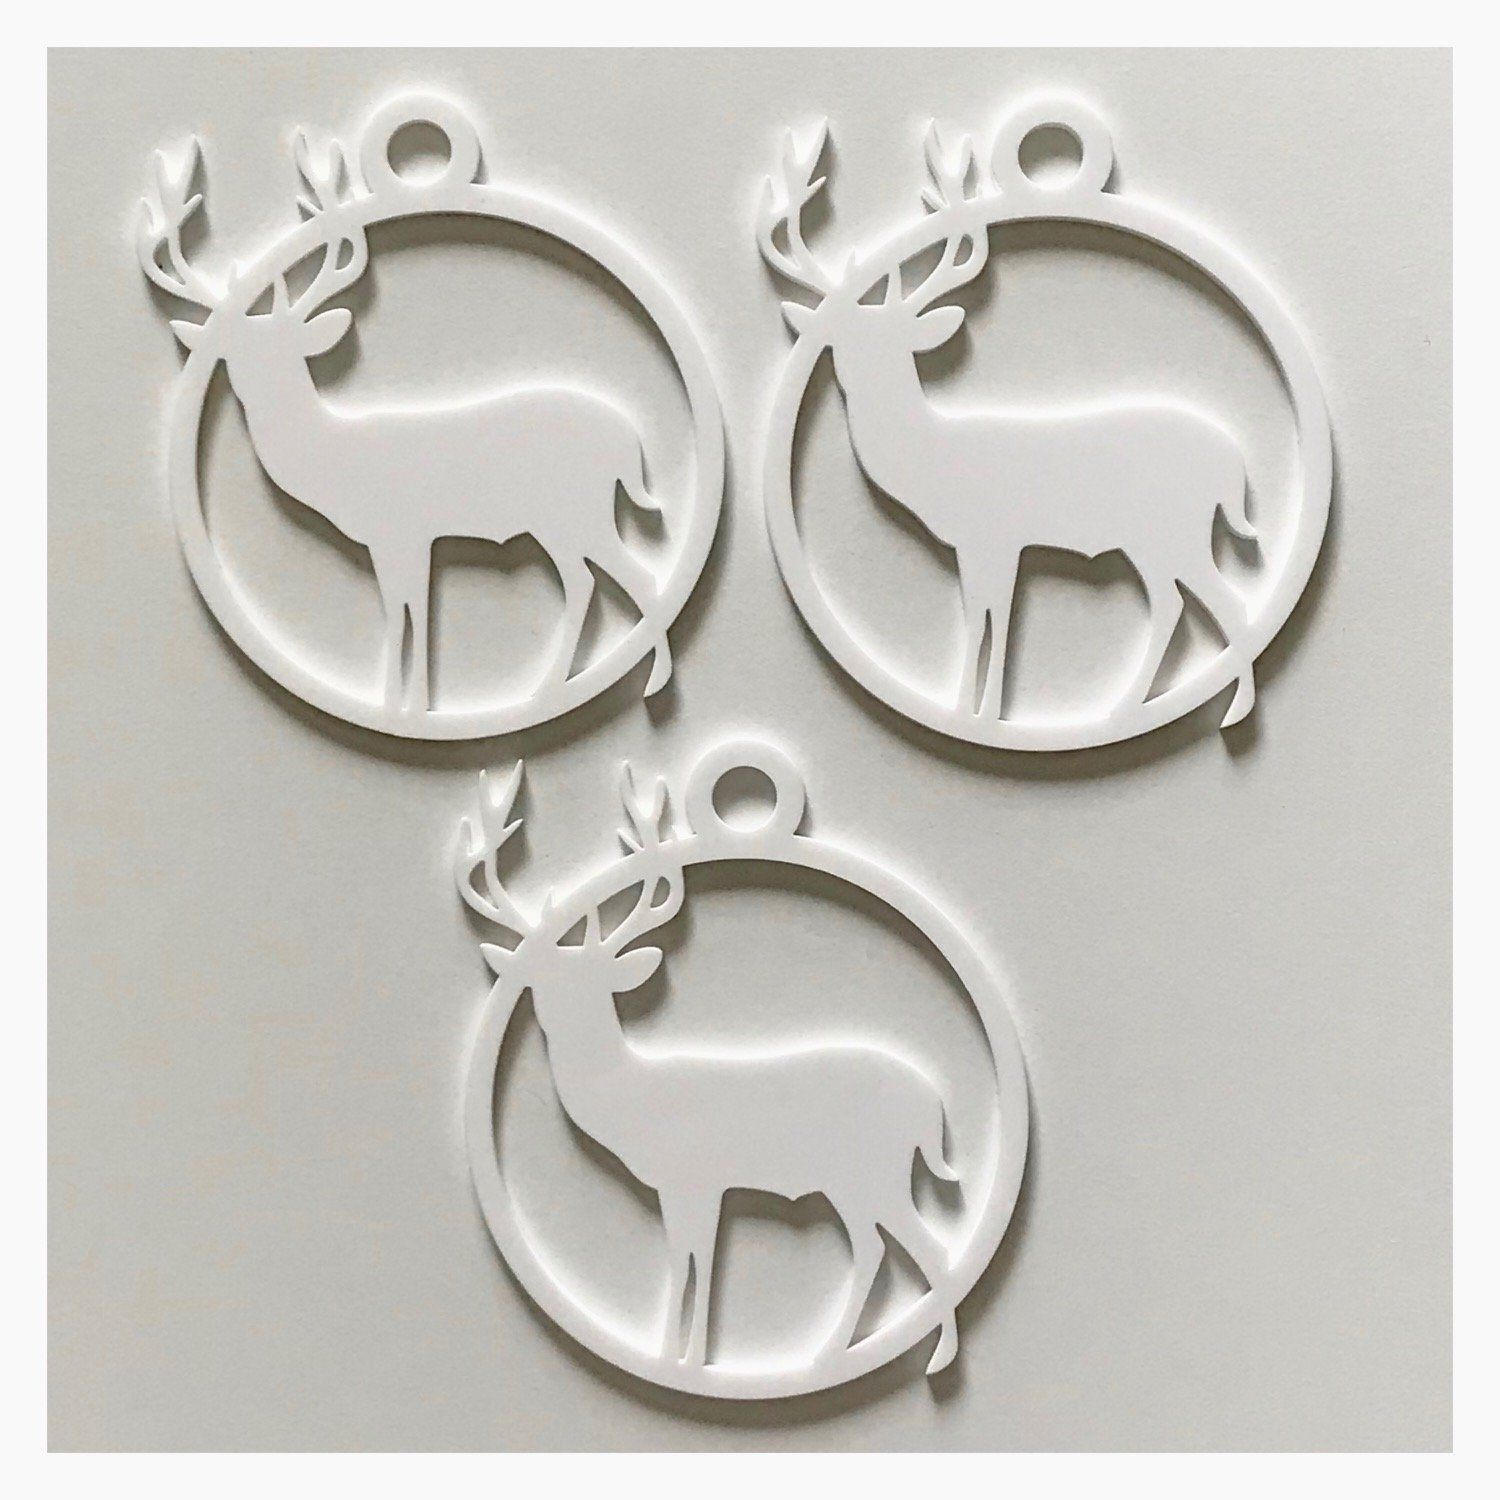 Stag Deer Decoration Hanging Set Of 3 White Plastic Acrylic Country Decor Garden - The Renmy Store